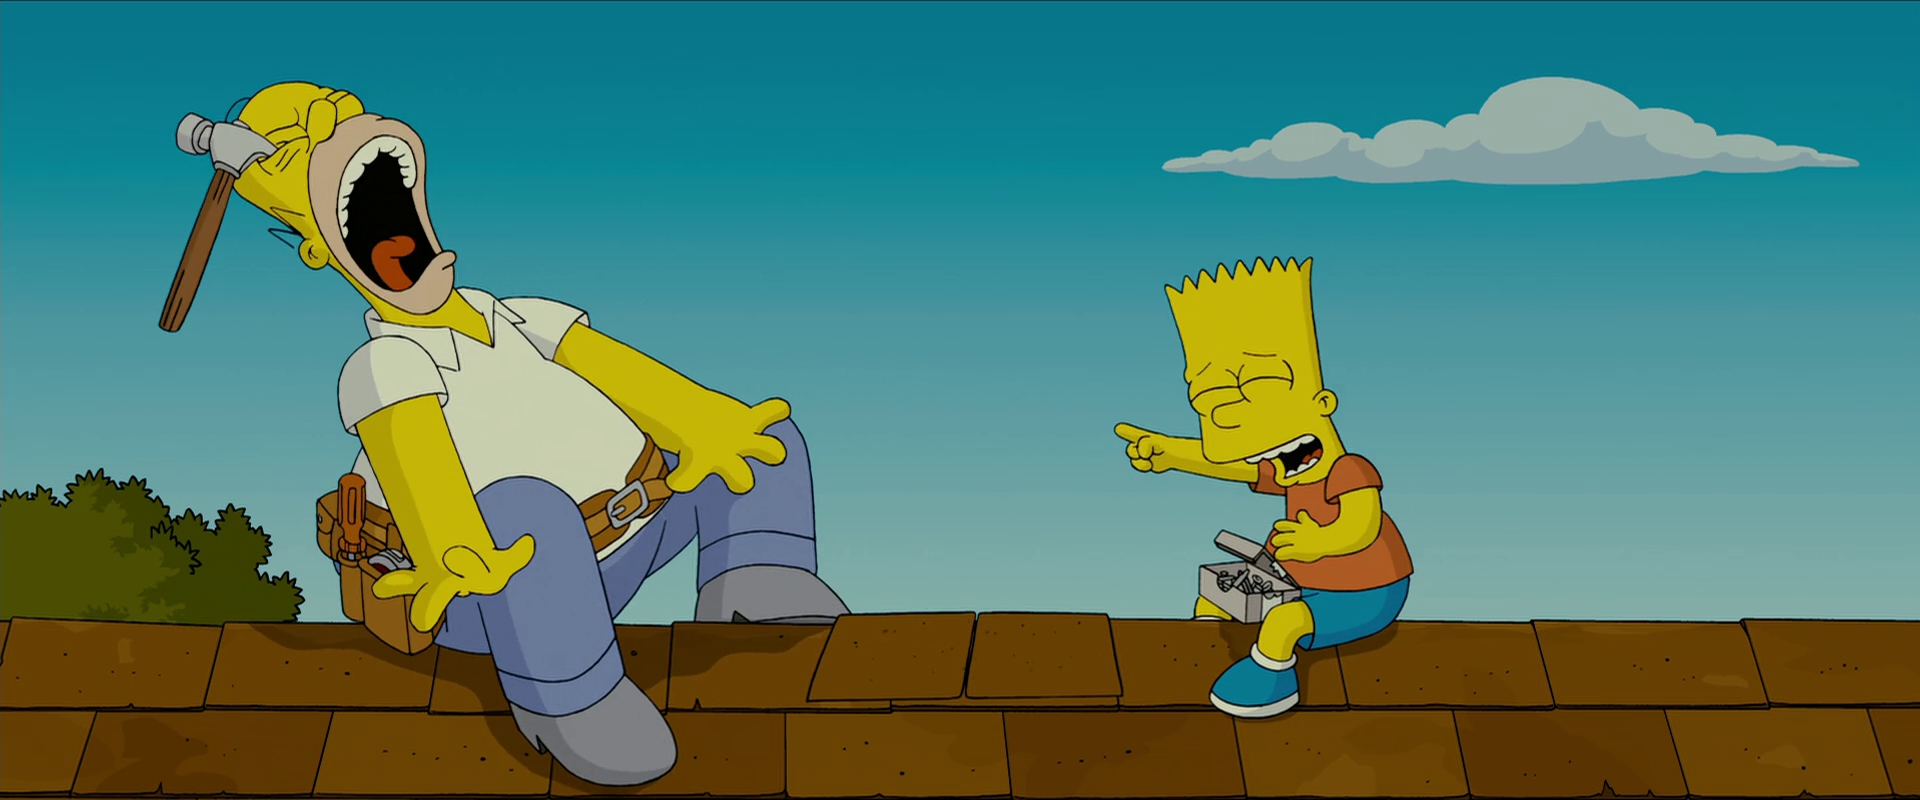 Alone Boy Hd Wallpaper With Quotes The Simpsons Movie Wallpapers Hd Backgrounds